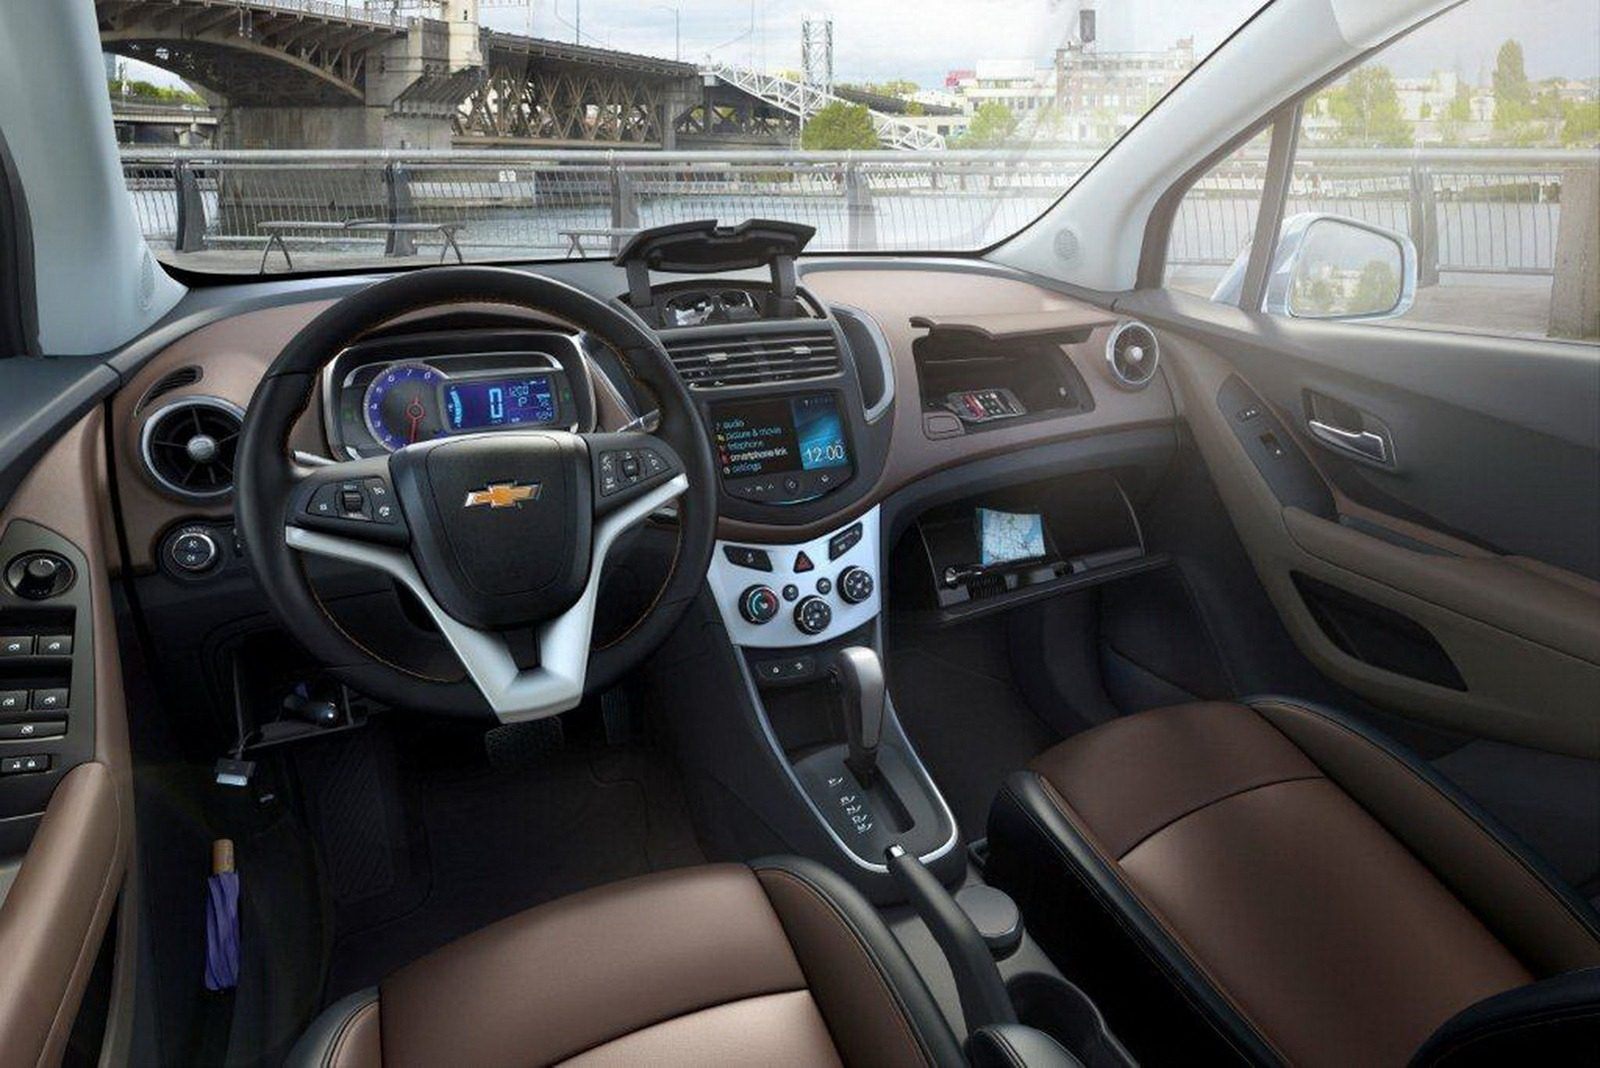 Chevrolet trax review eagle ridge gm chevrolet trax review sciox Image collections